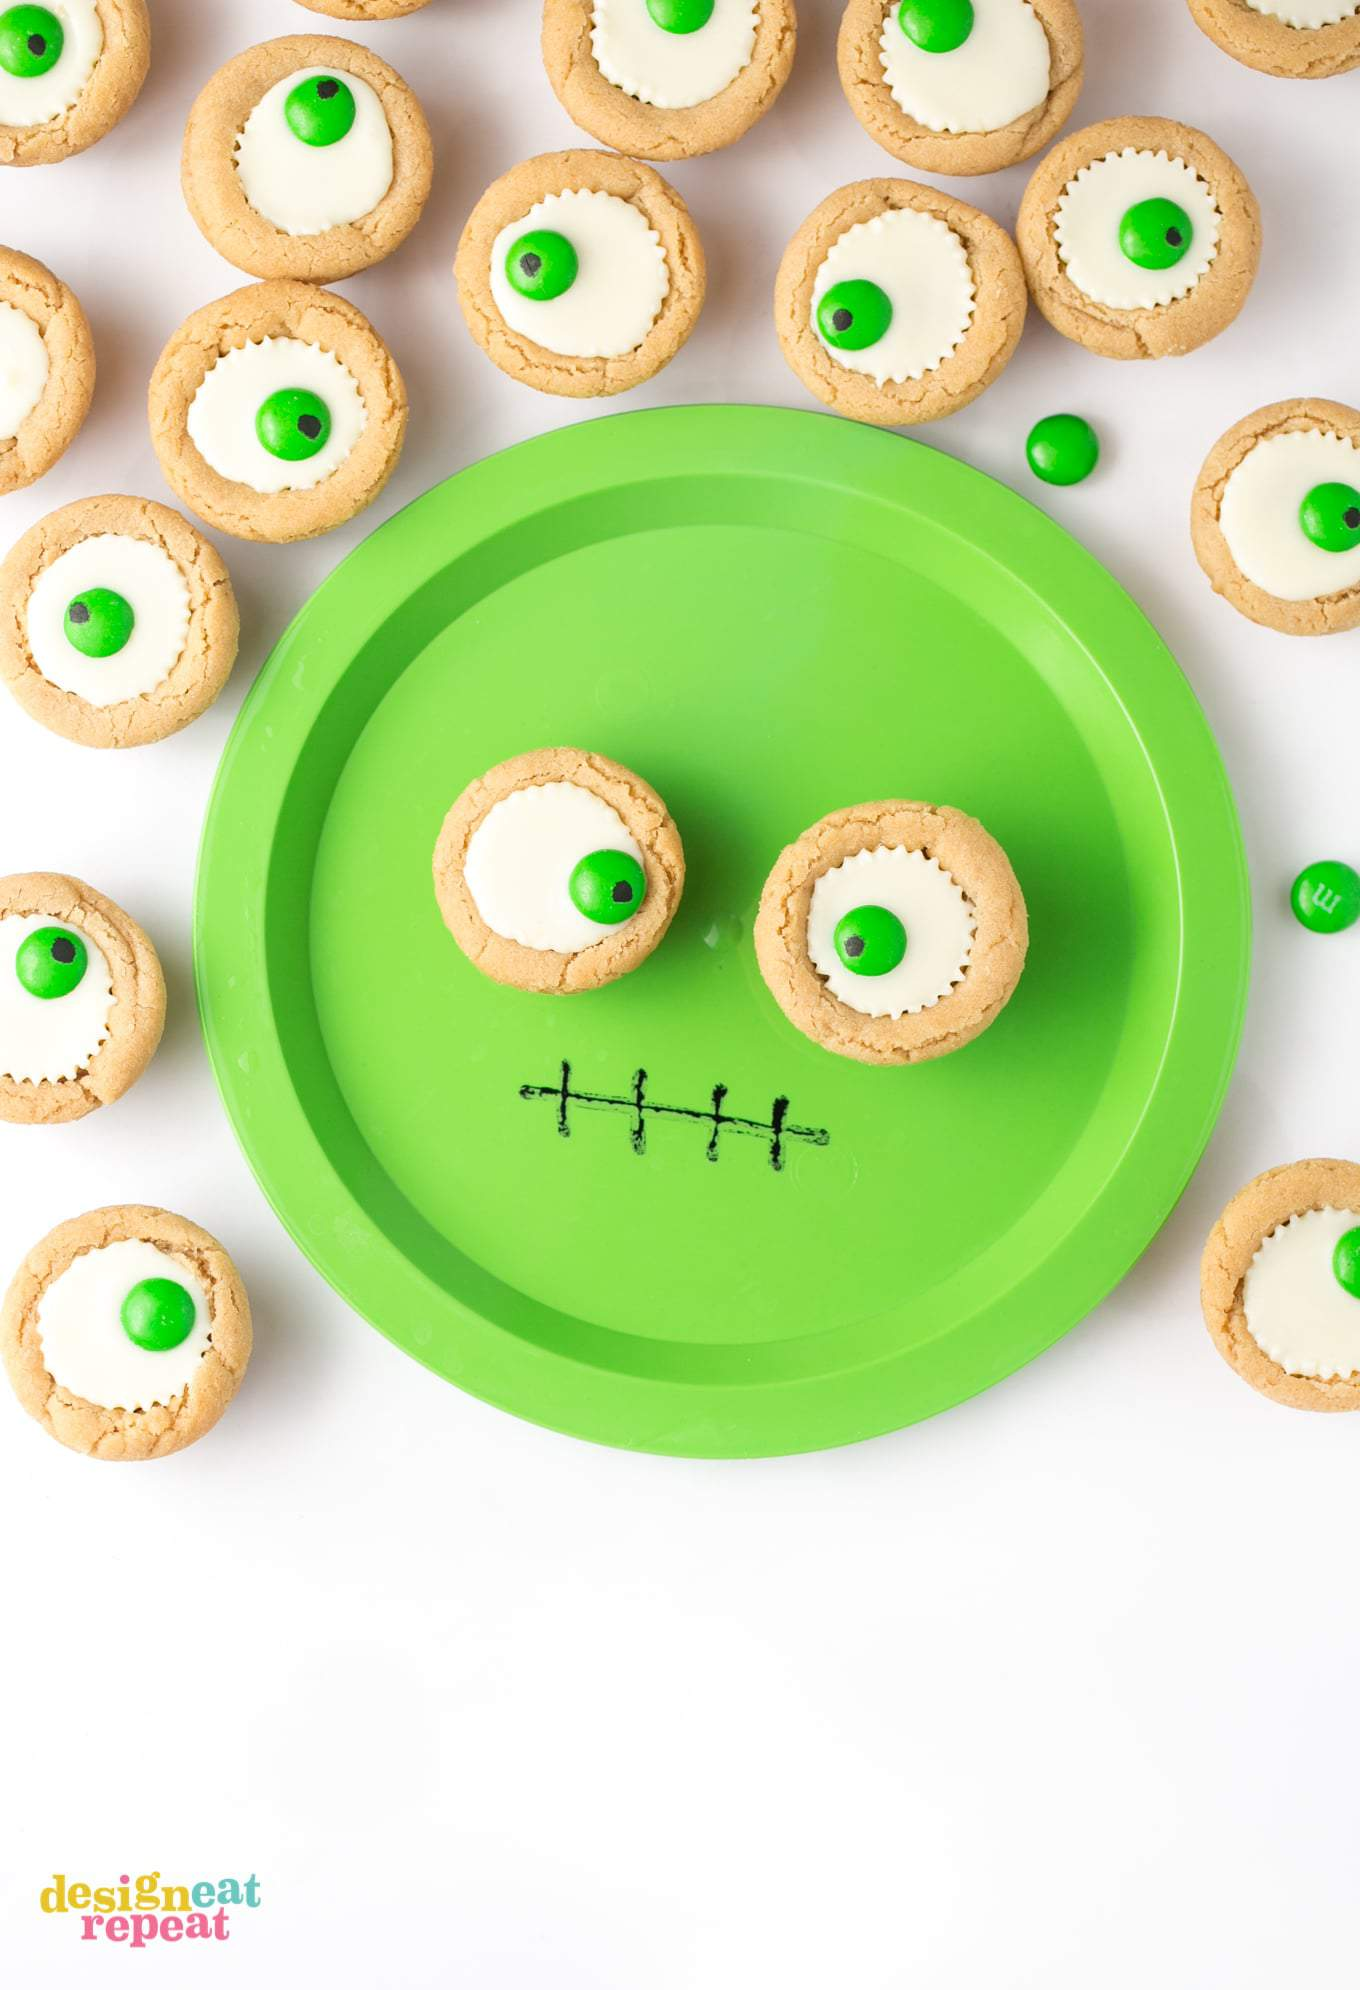 Mini white peanut butter cup cookies on green monster face plate.